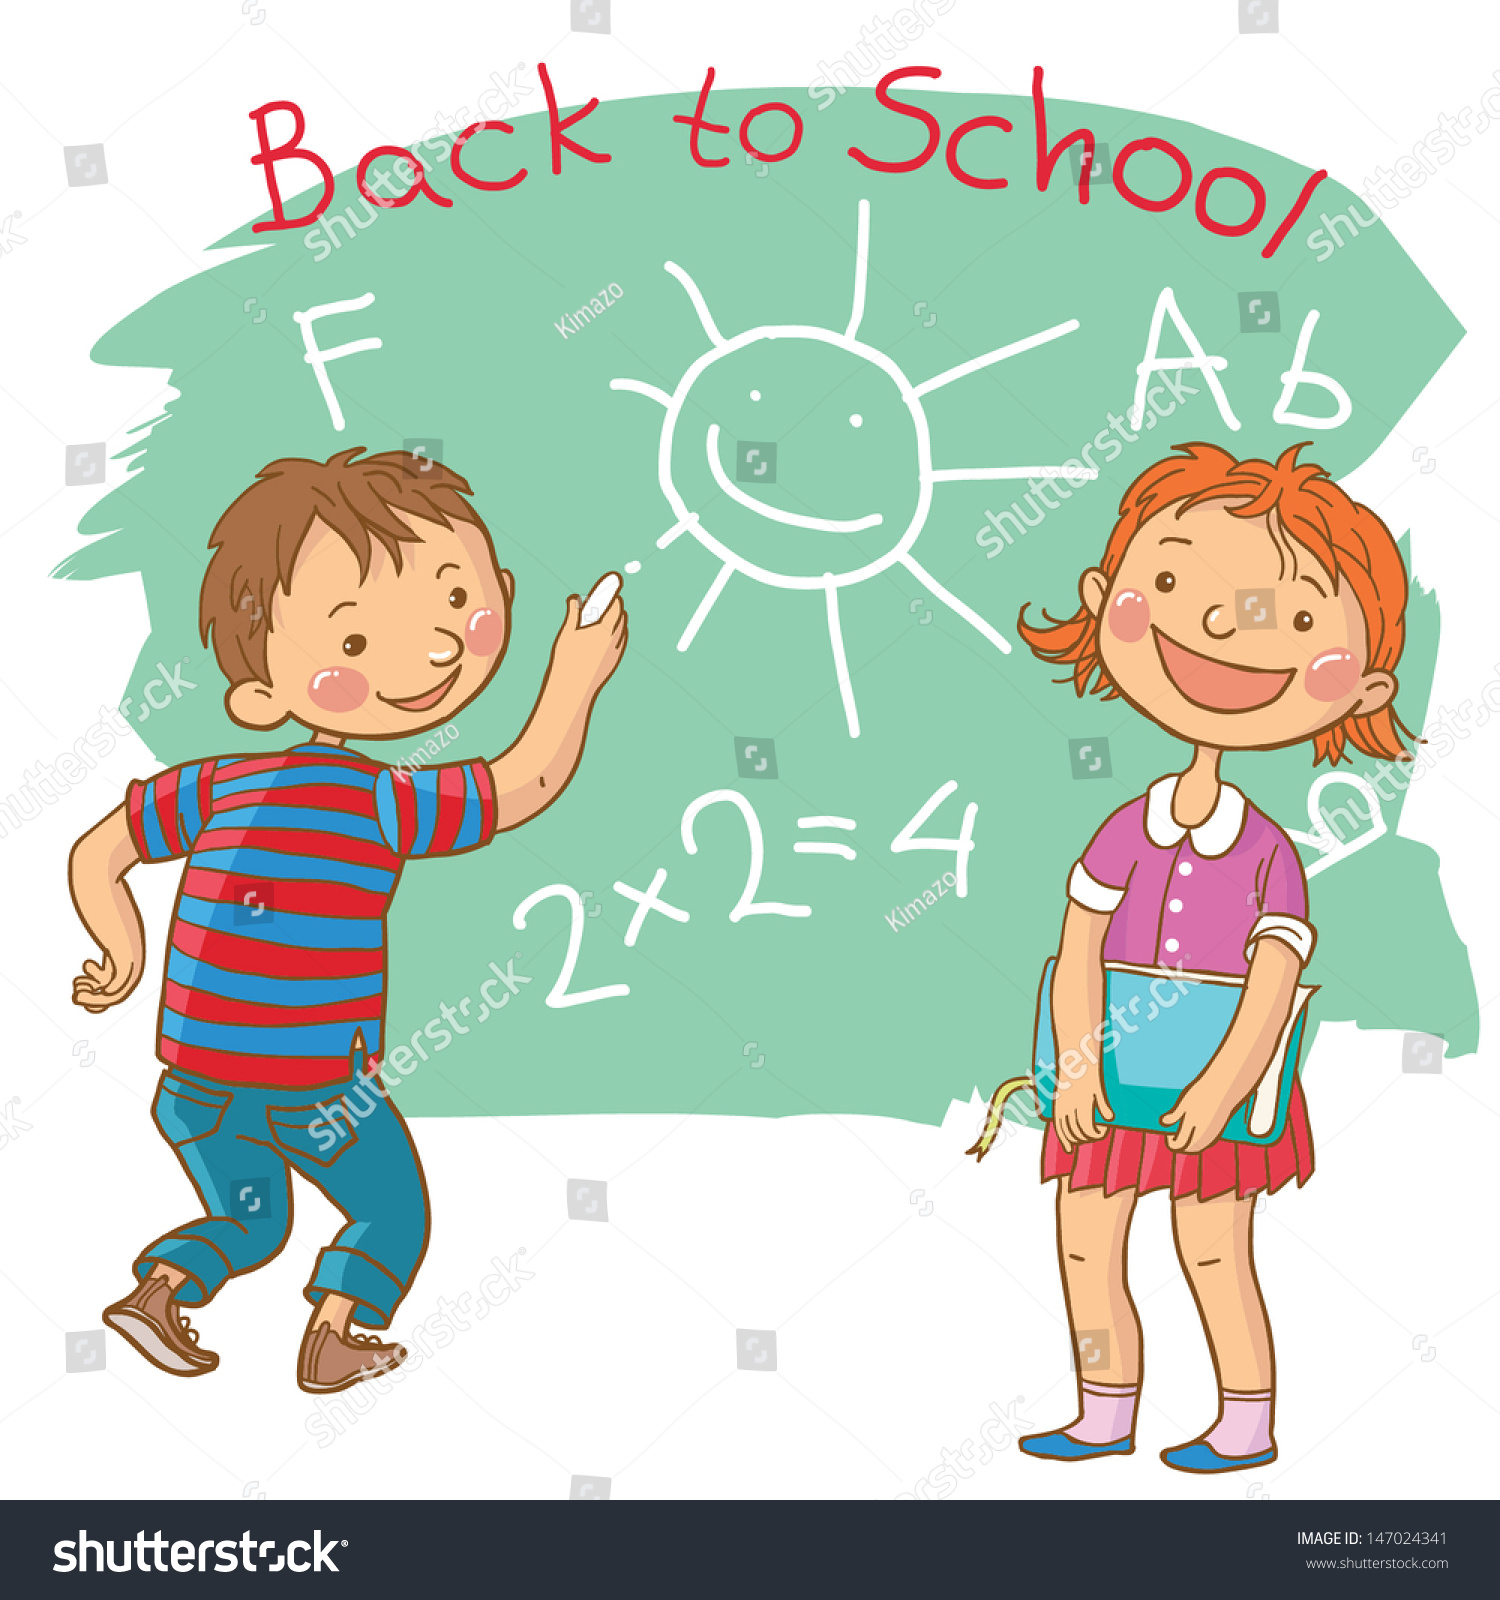 cute girl boy writing chalkboard school stock vector (royalty free